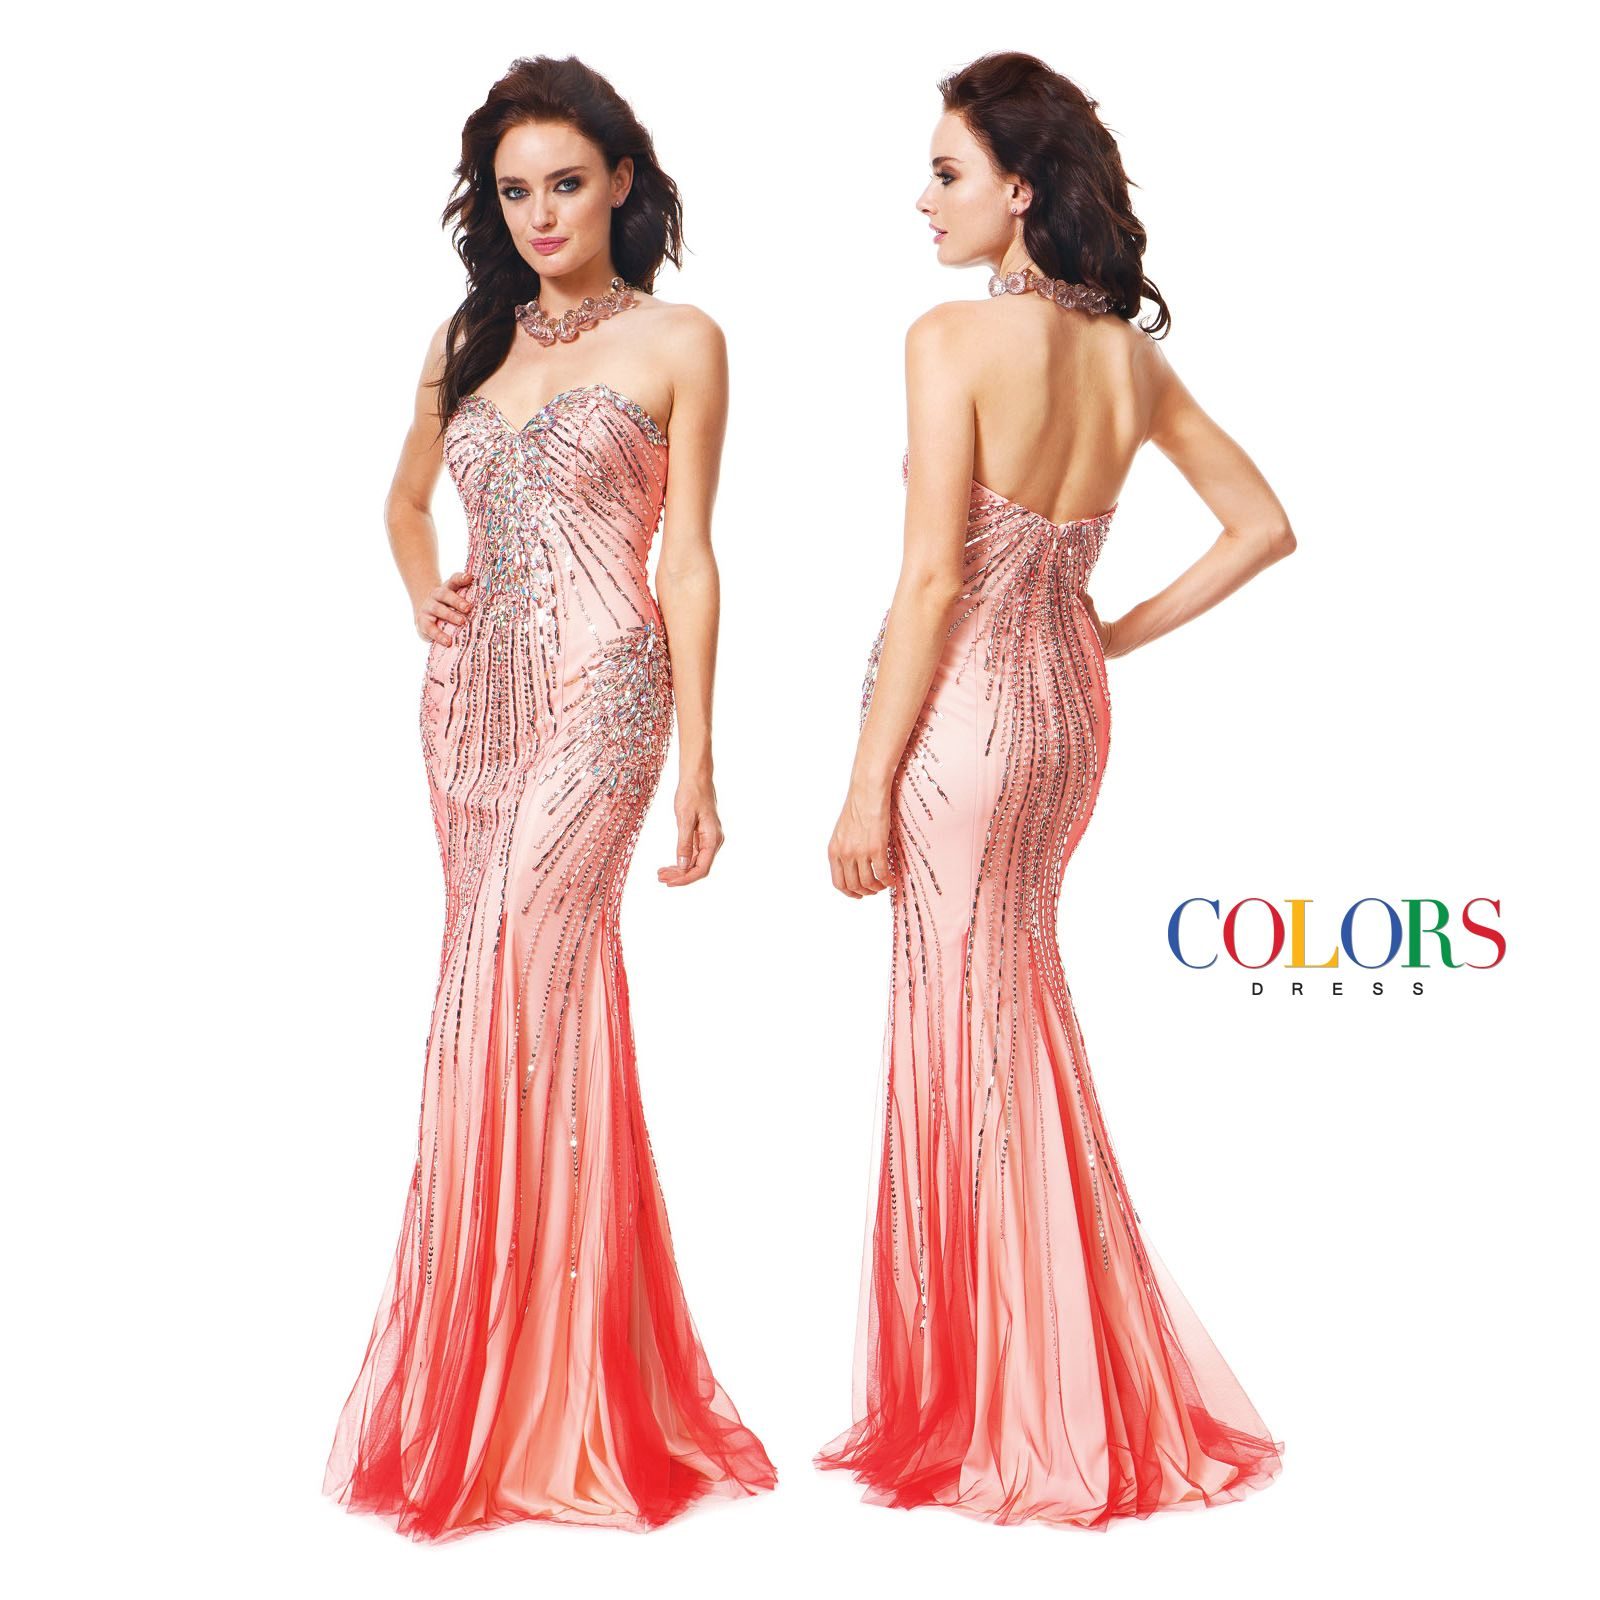 Dazzling! COLORS DRESS Style 1166 #prom #promshopping #redcarpet #fashion #style